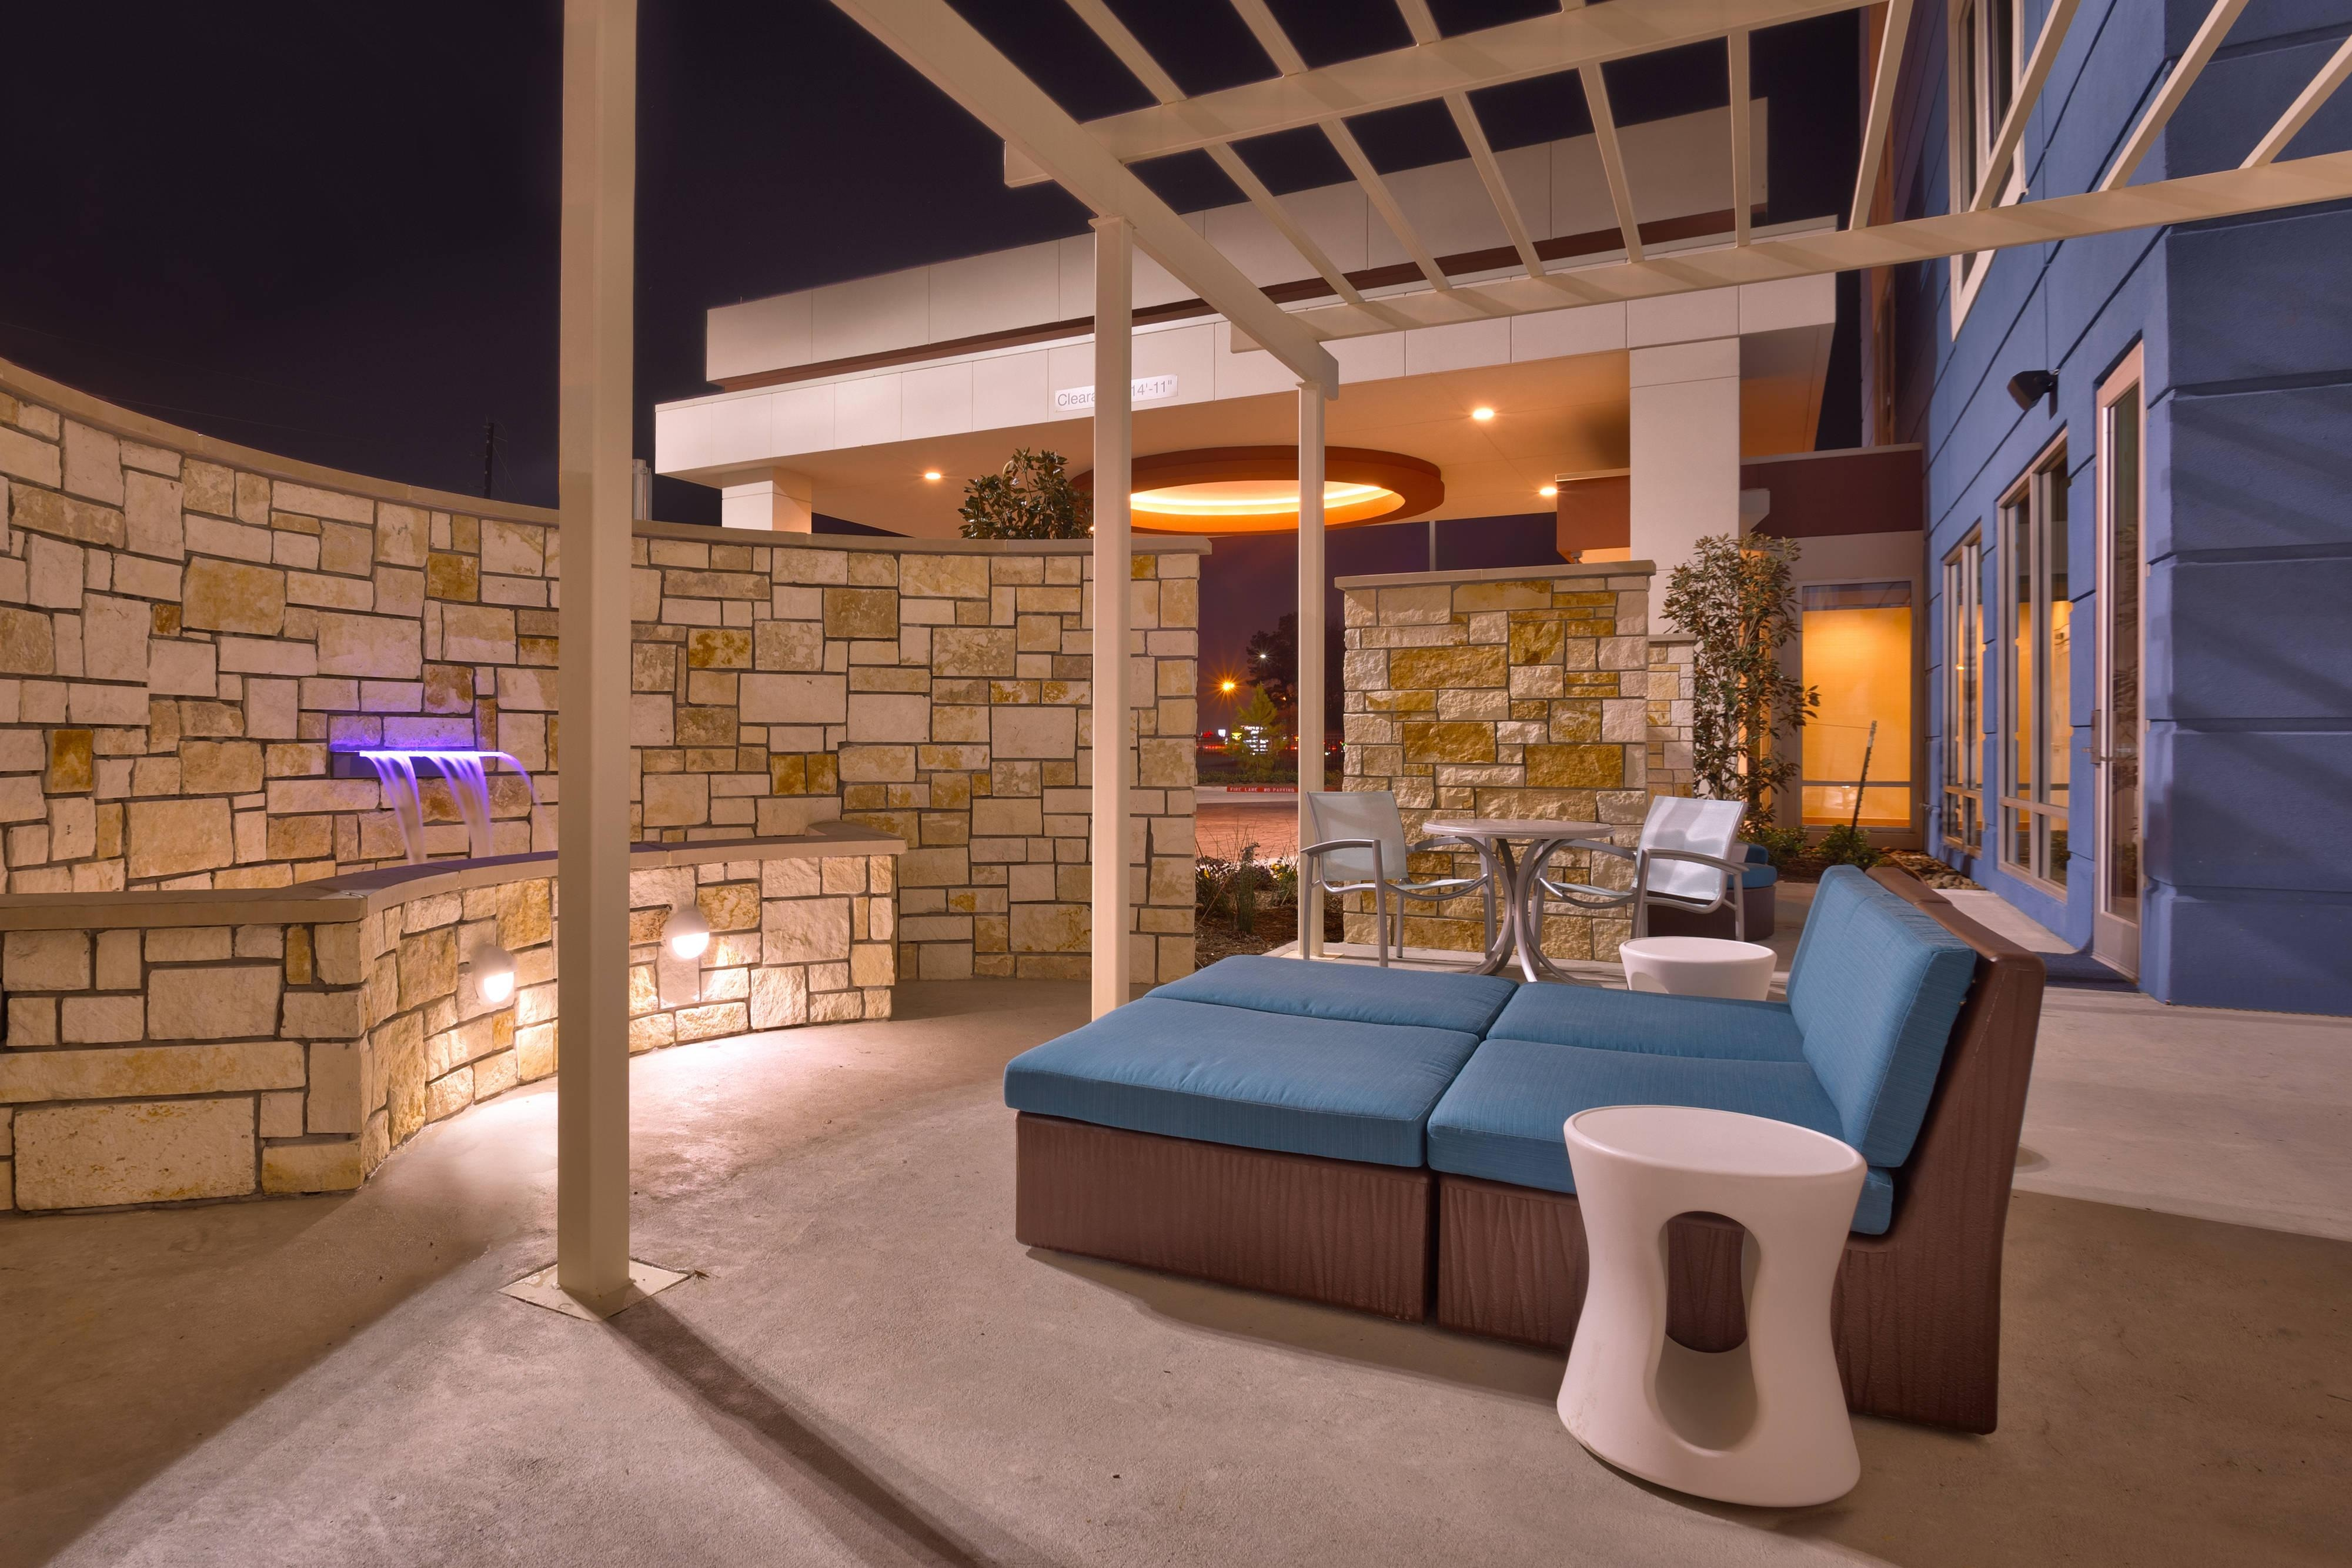 Patio del SpringHill Suites Houston I-45 North